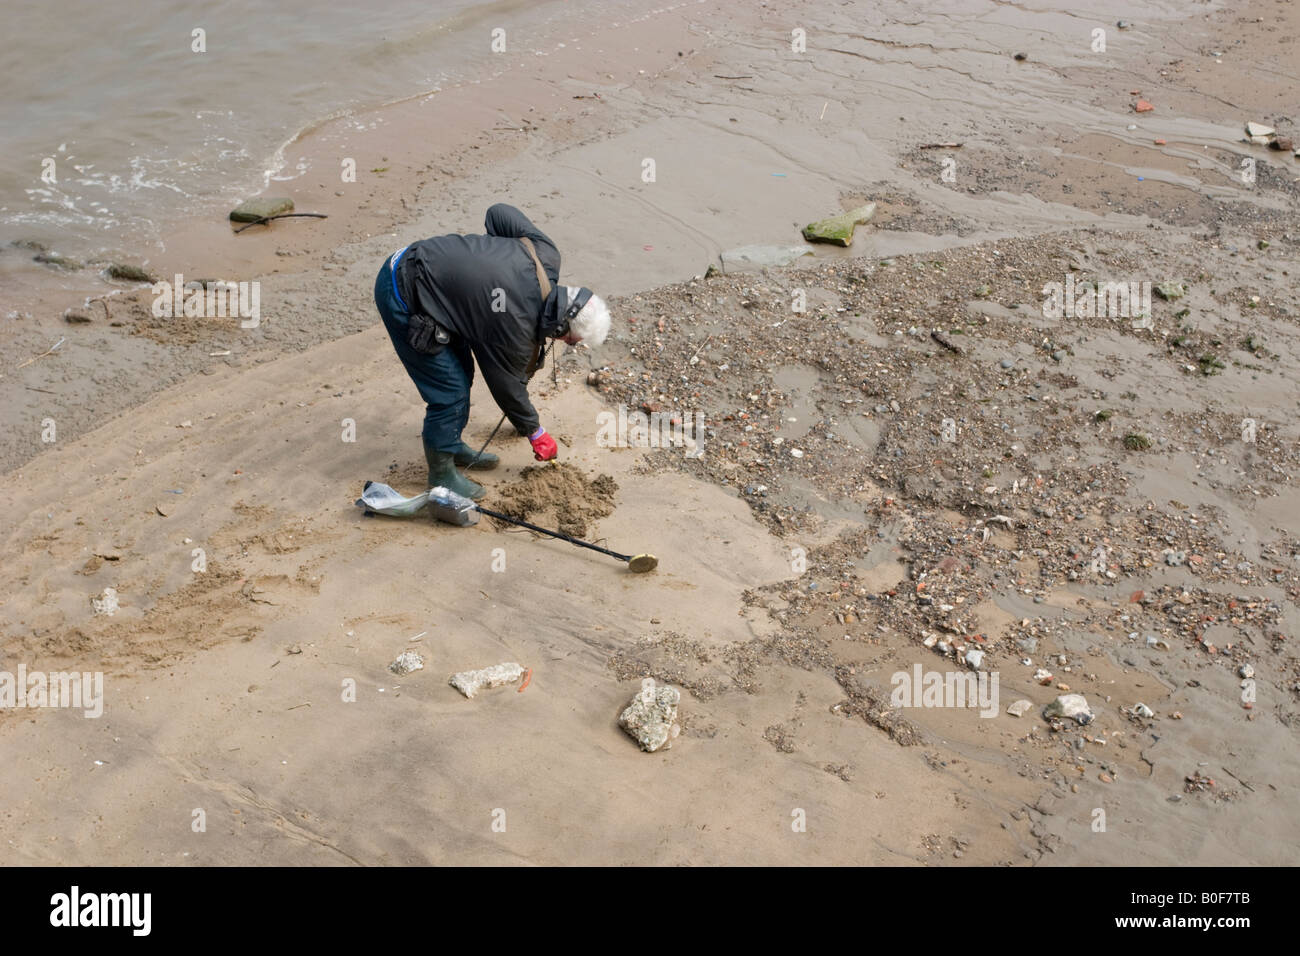 metal Detectorist searches the Foreshore near Greenwich Pier Bends to search a pile of sand in more detail - Stock Image